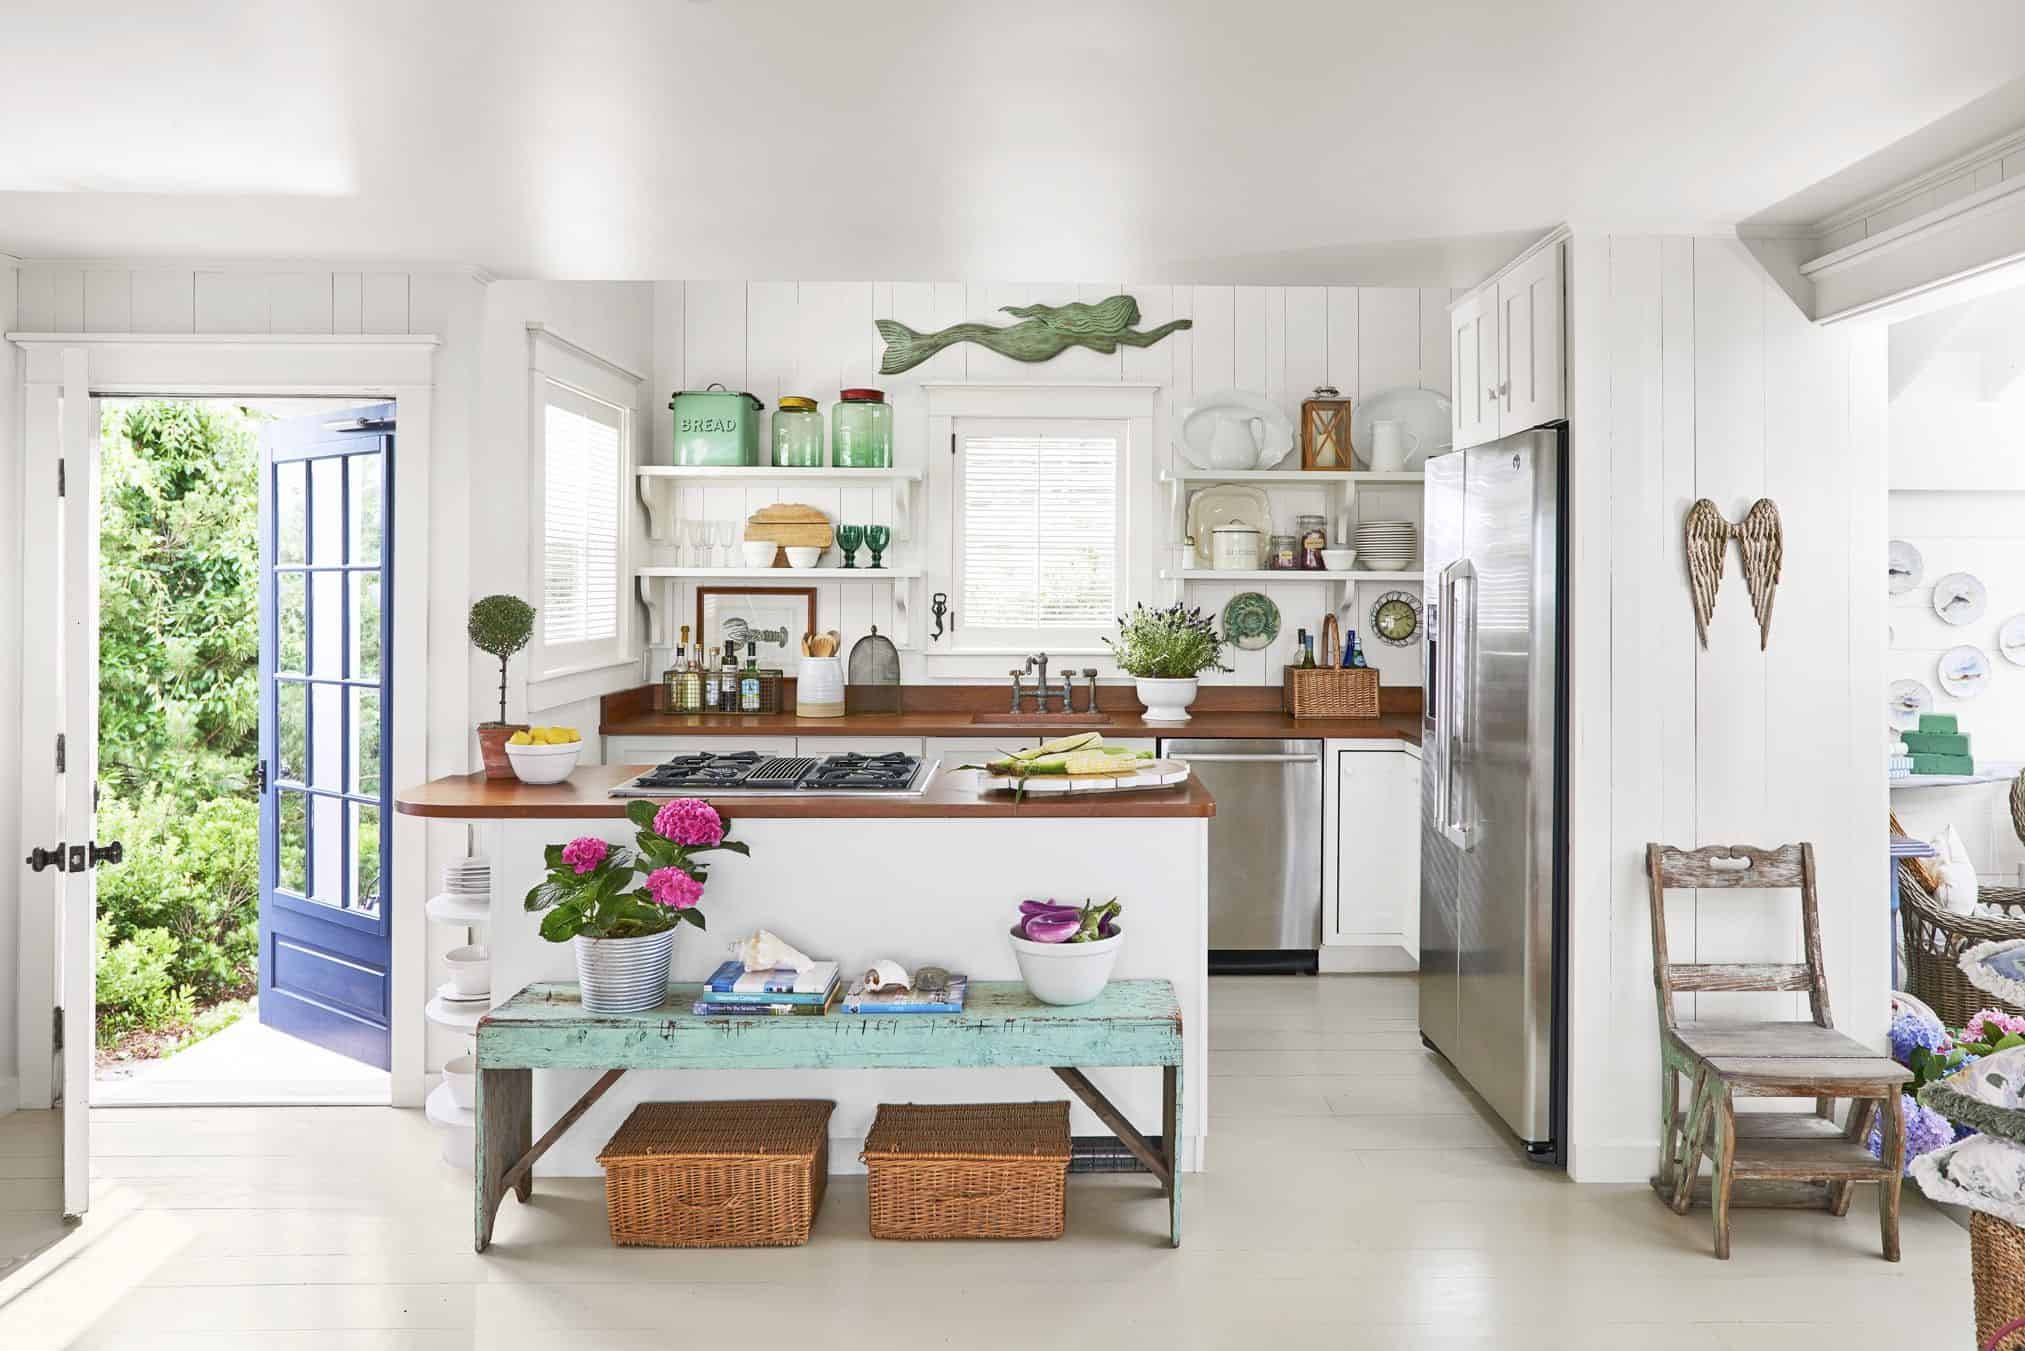 retro kitchen Beach House Decorating Ideas for 2020